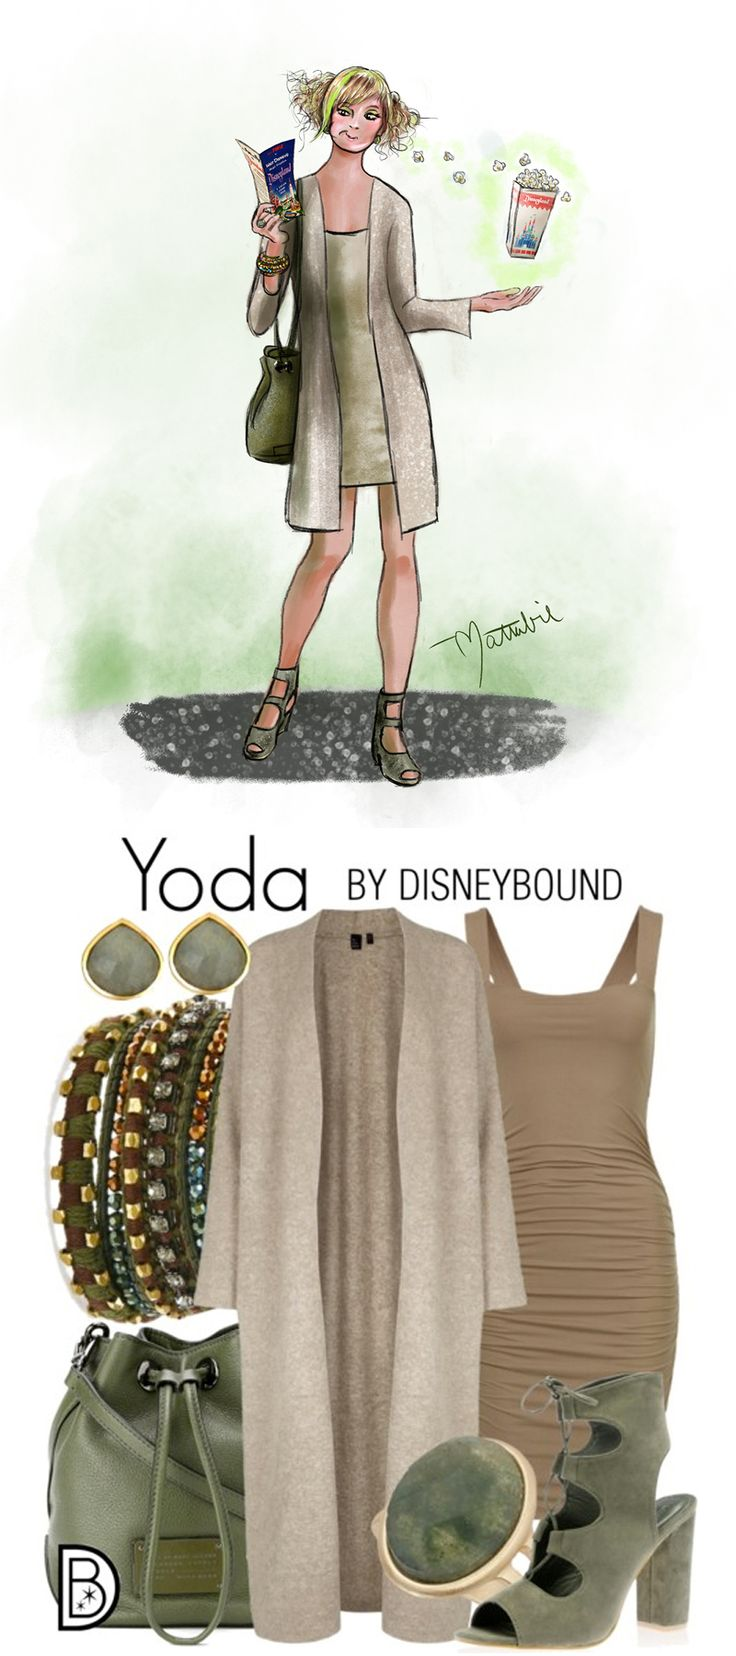 Star Wars style inspired by Jedi master Yoda, created by DisneyBound's Leslie Kay, and sketched by Matthew Simpson.